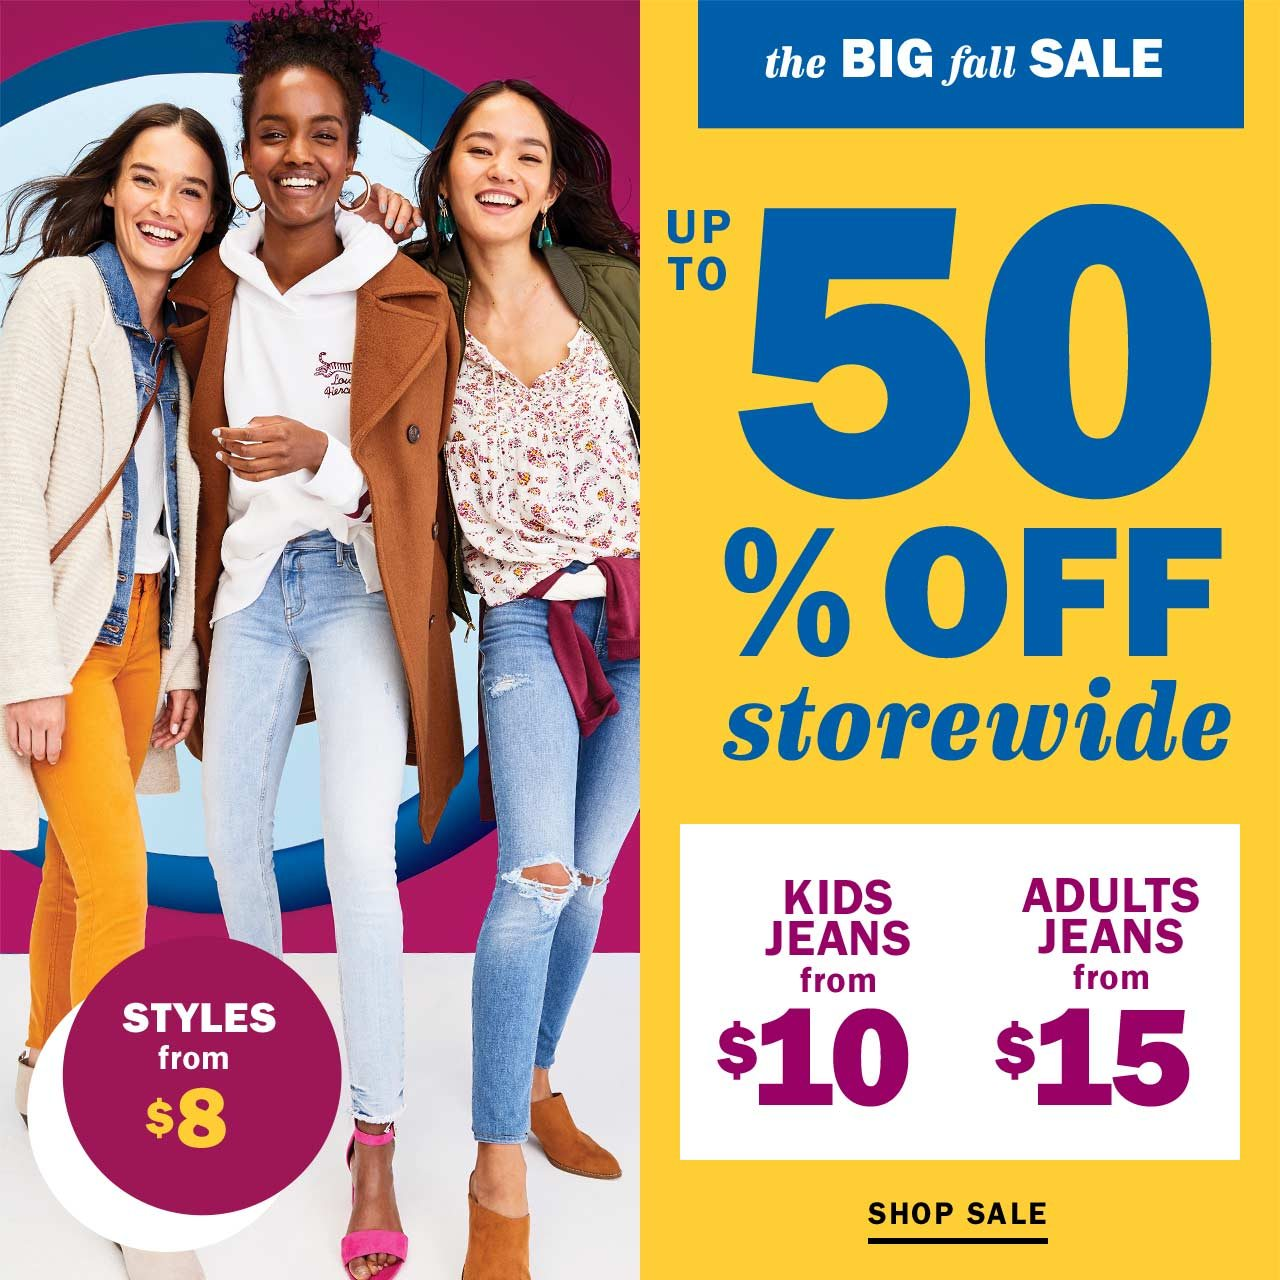 The Fall Sale is ON — $8 styles comin\' in hot - Old Navy Email Archive